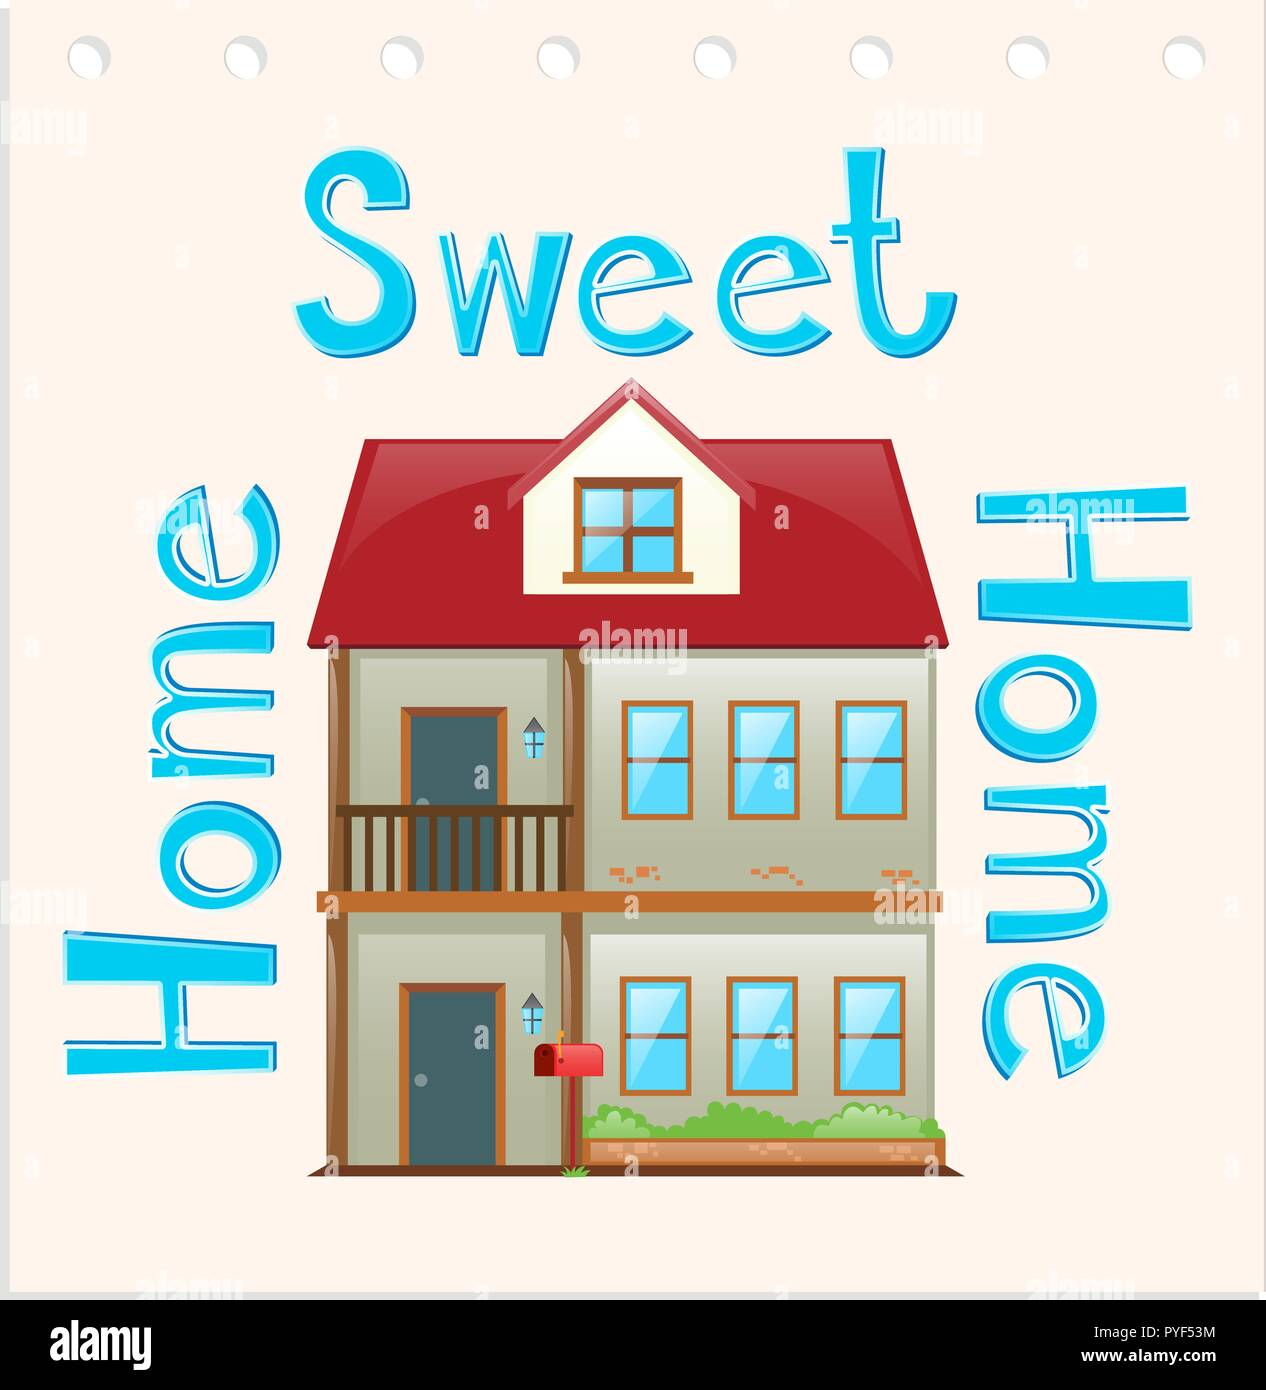 Wordcard with home sweet home illustration - Stock Vector